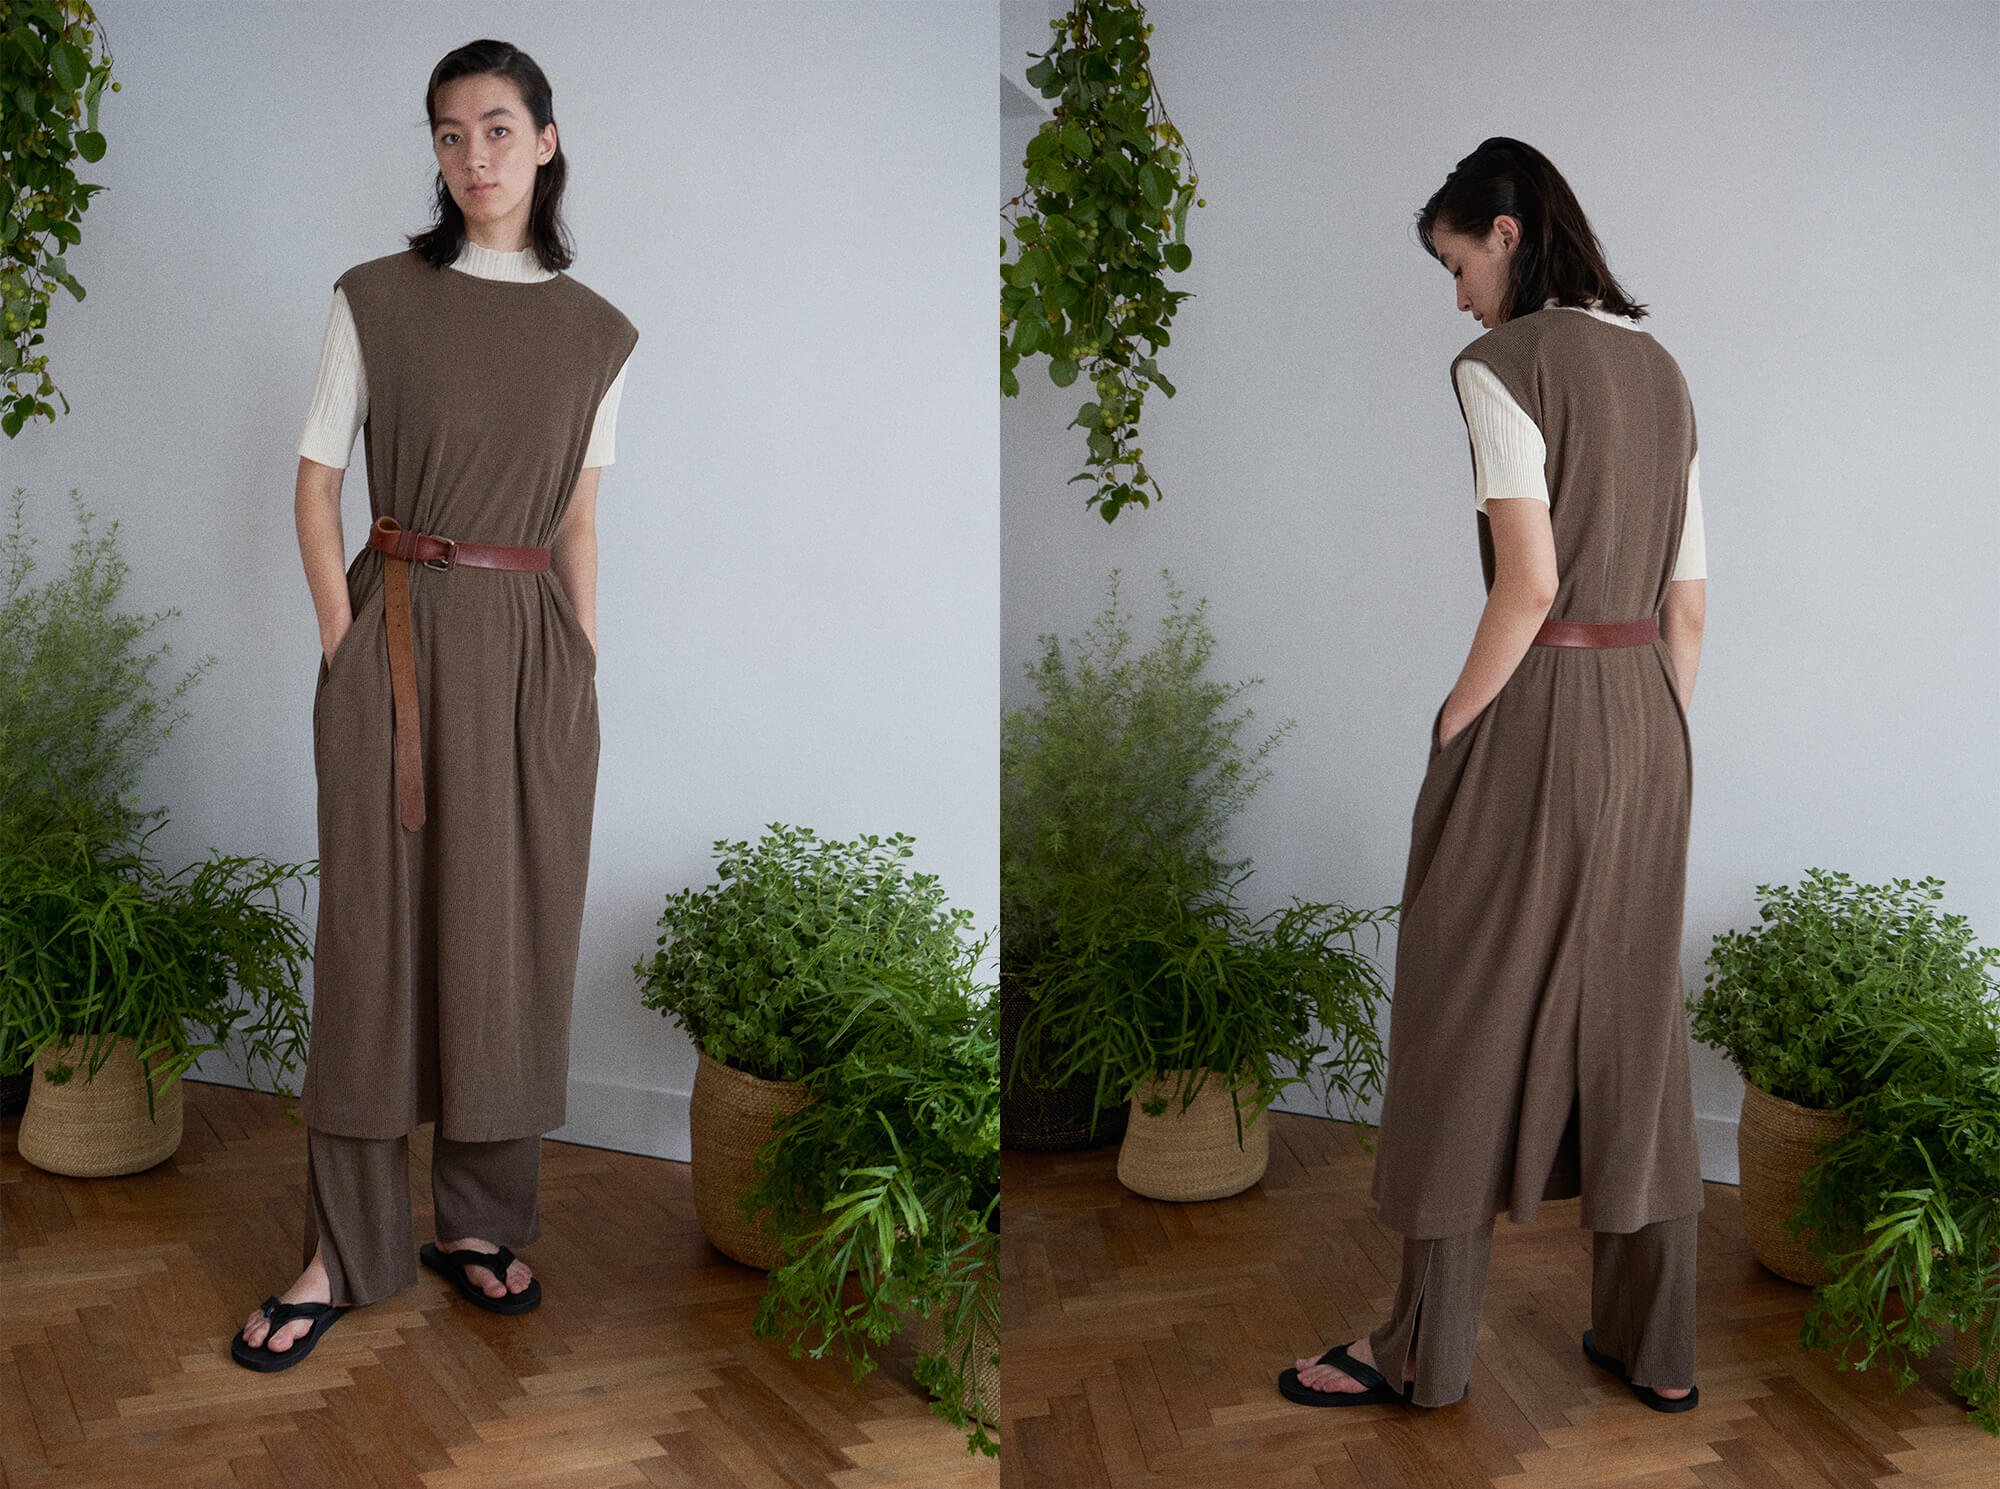 <img class='new_mark_img1' src='https://img.shop-pro.jp/img/new/icons14.gif' style='border:none;display:inline;margin:0px;padding:0px;width:auto;' />raw silk ribbed-jersey sleeveless dress